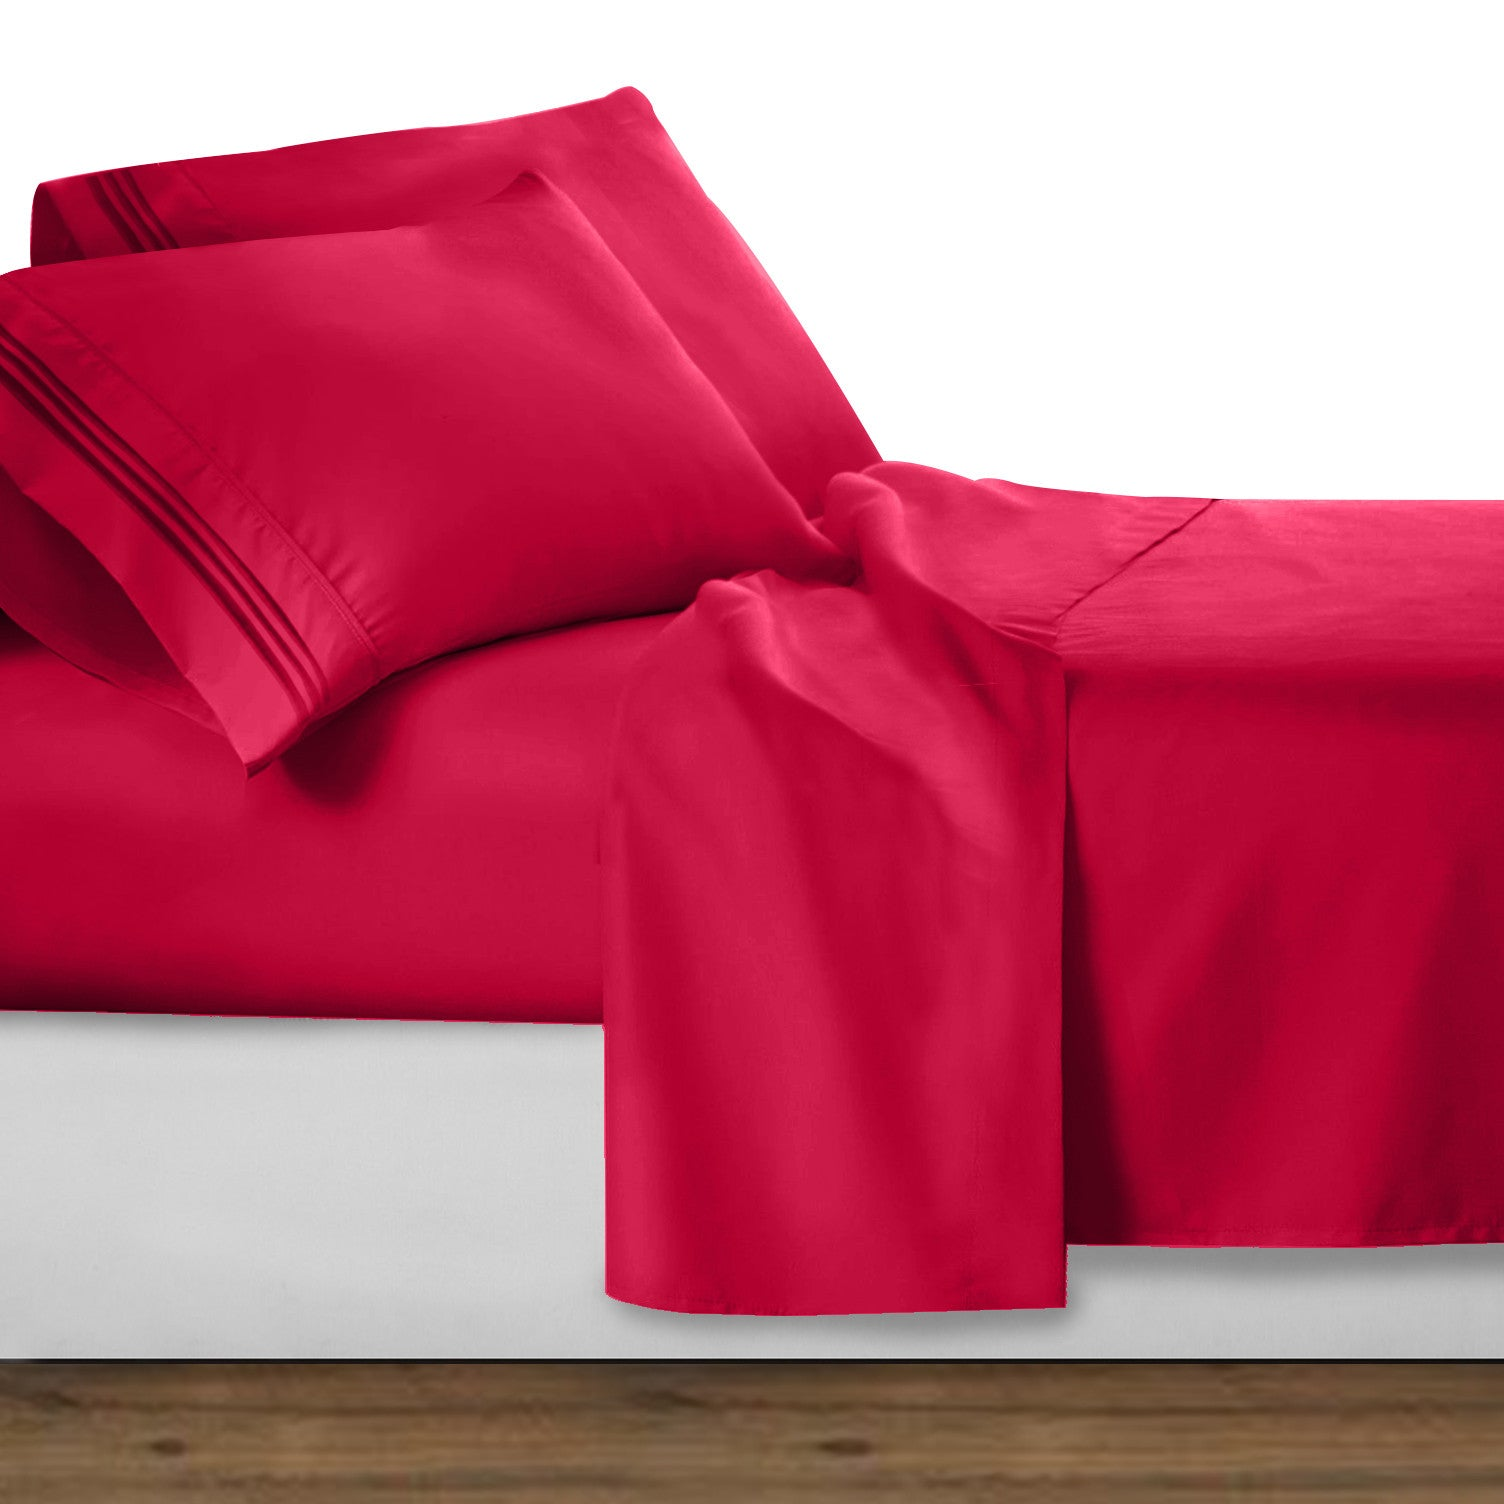 Ordinaire Unique Colors Deep Pocket Bed Sheet Set